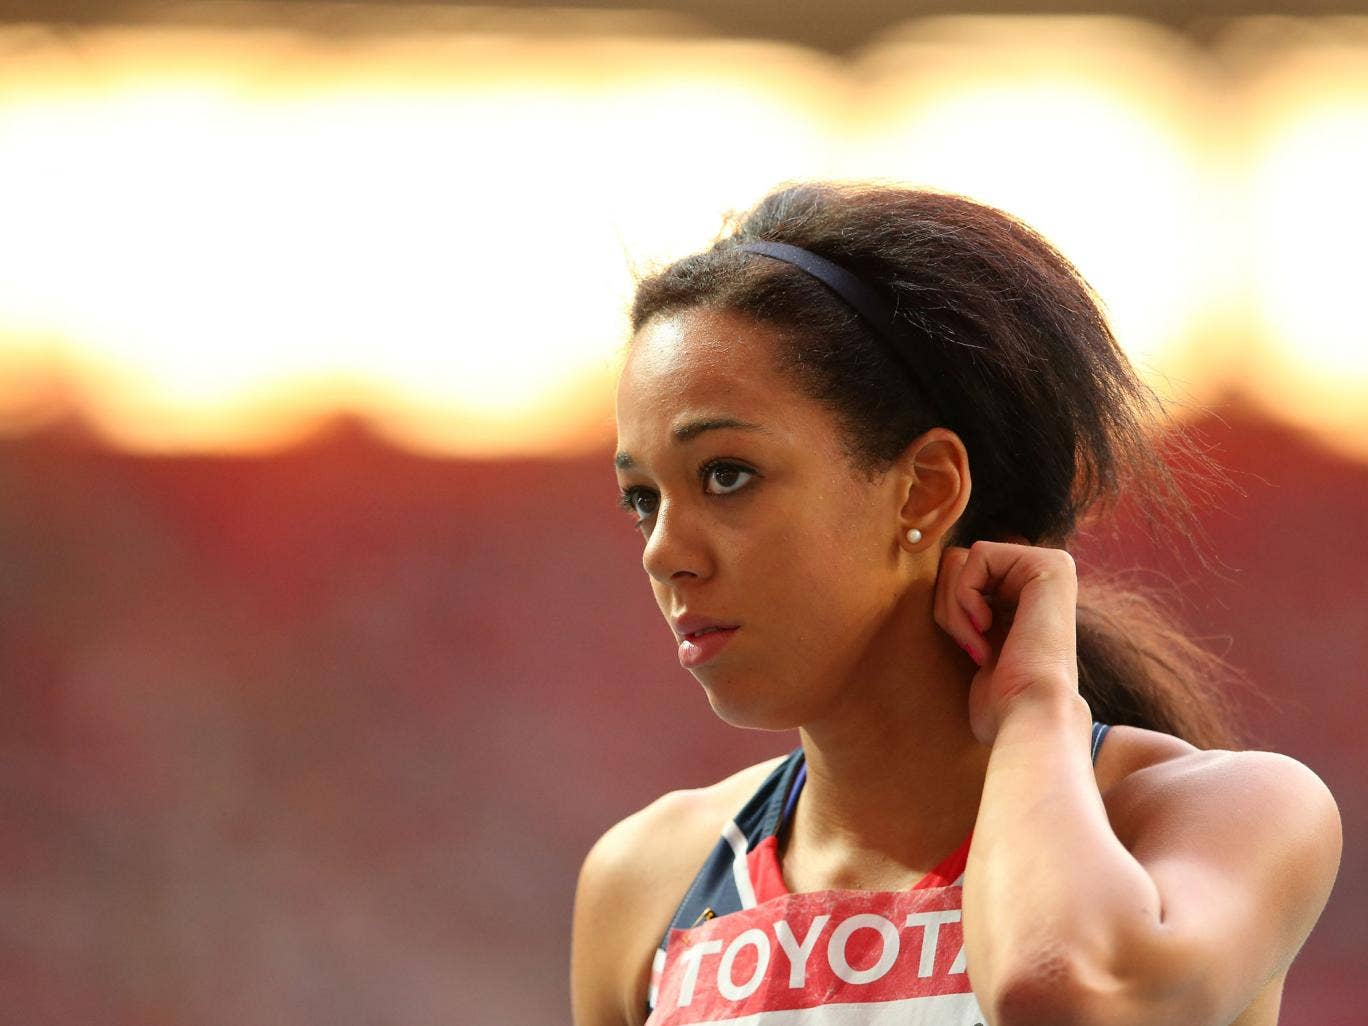 I'm going to be 23 in Rio – 26, 27 is the peak age for heptathletes, so 2020 is realistic for me as well